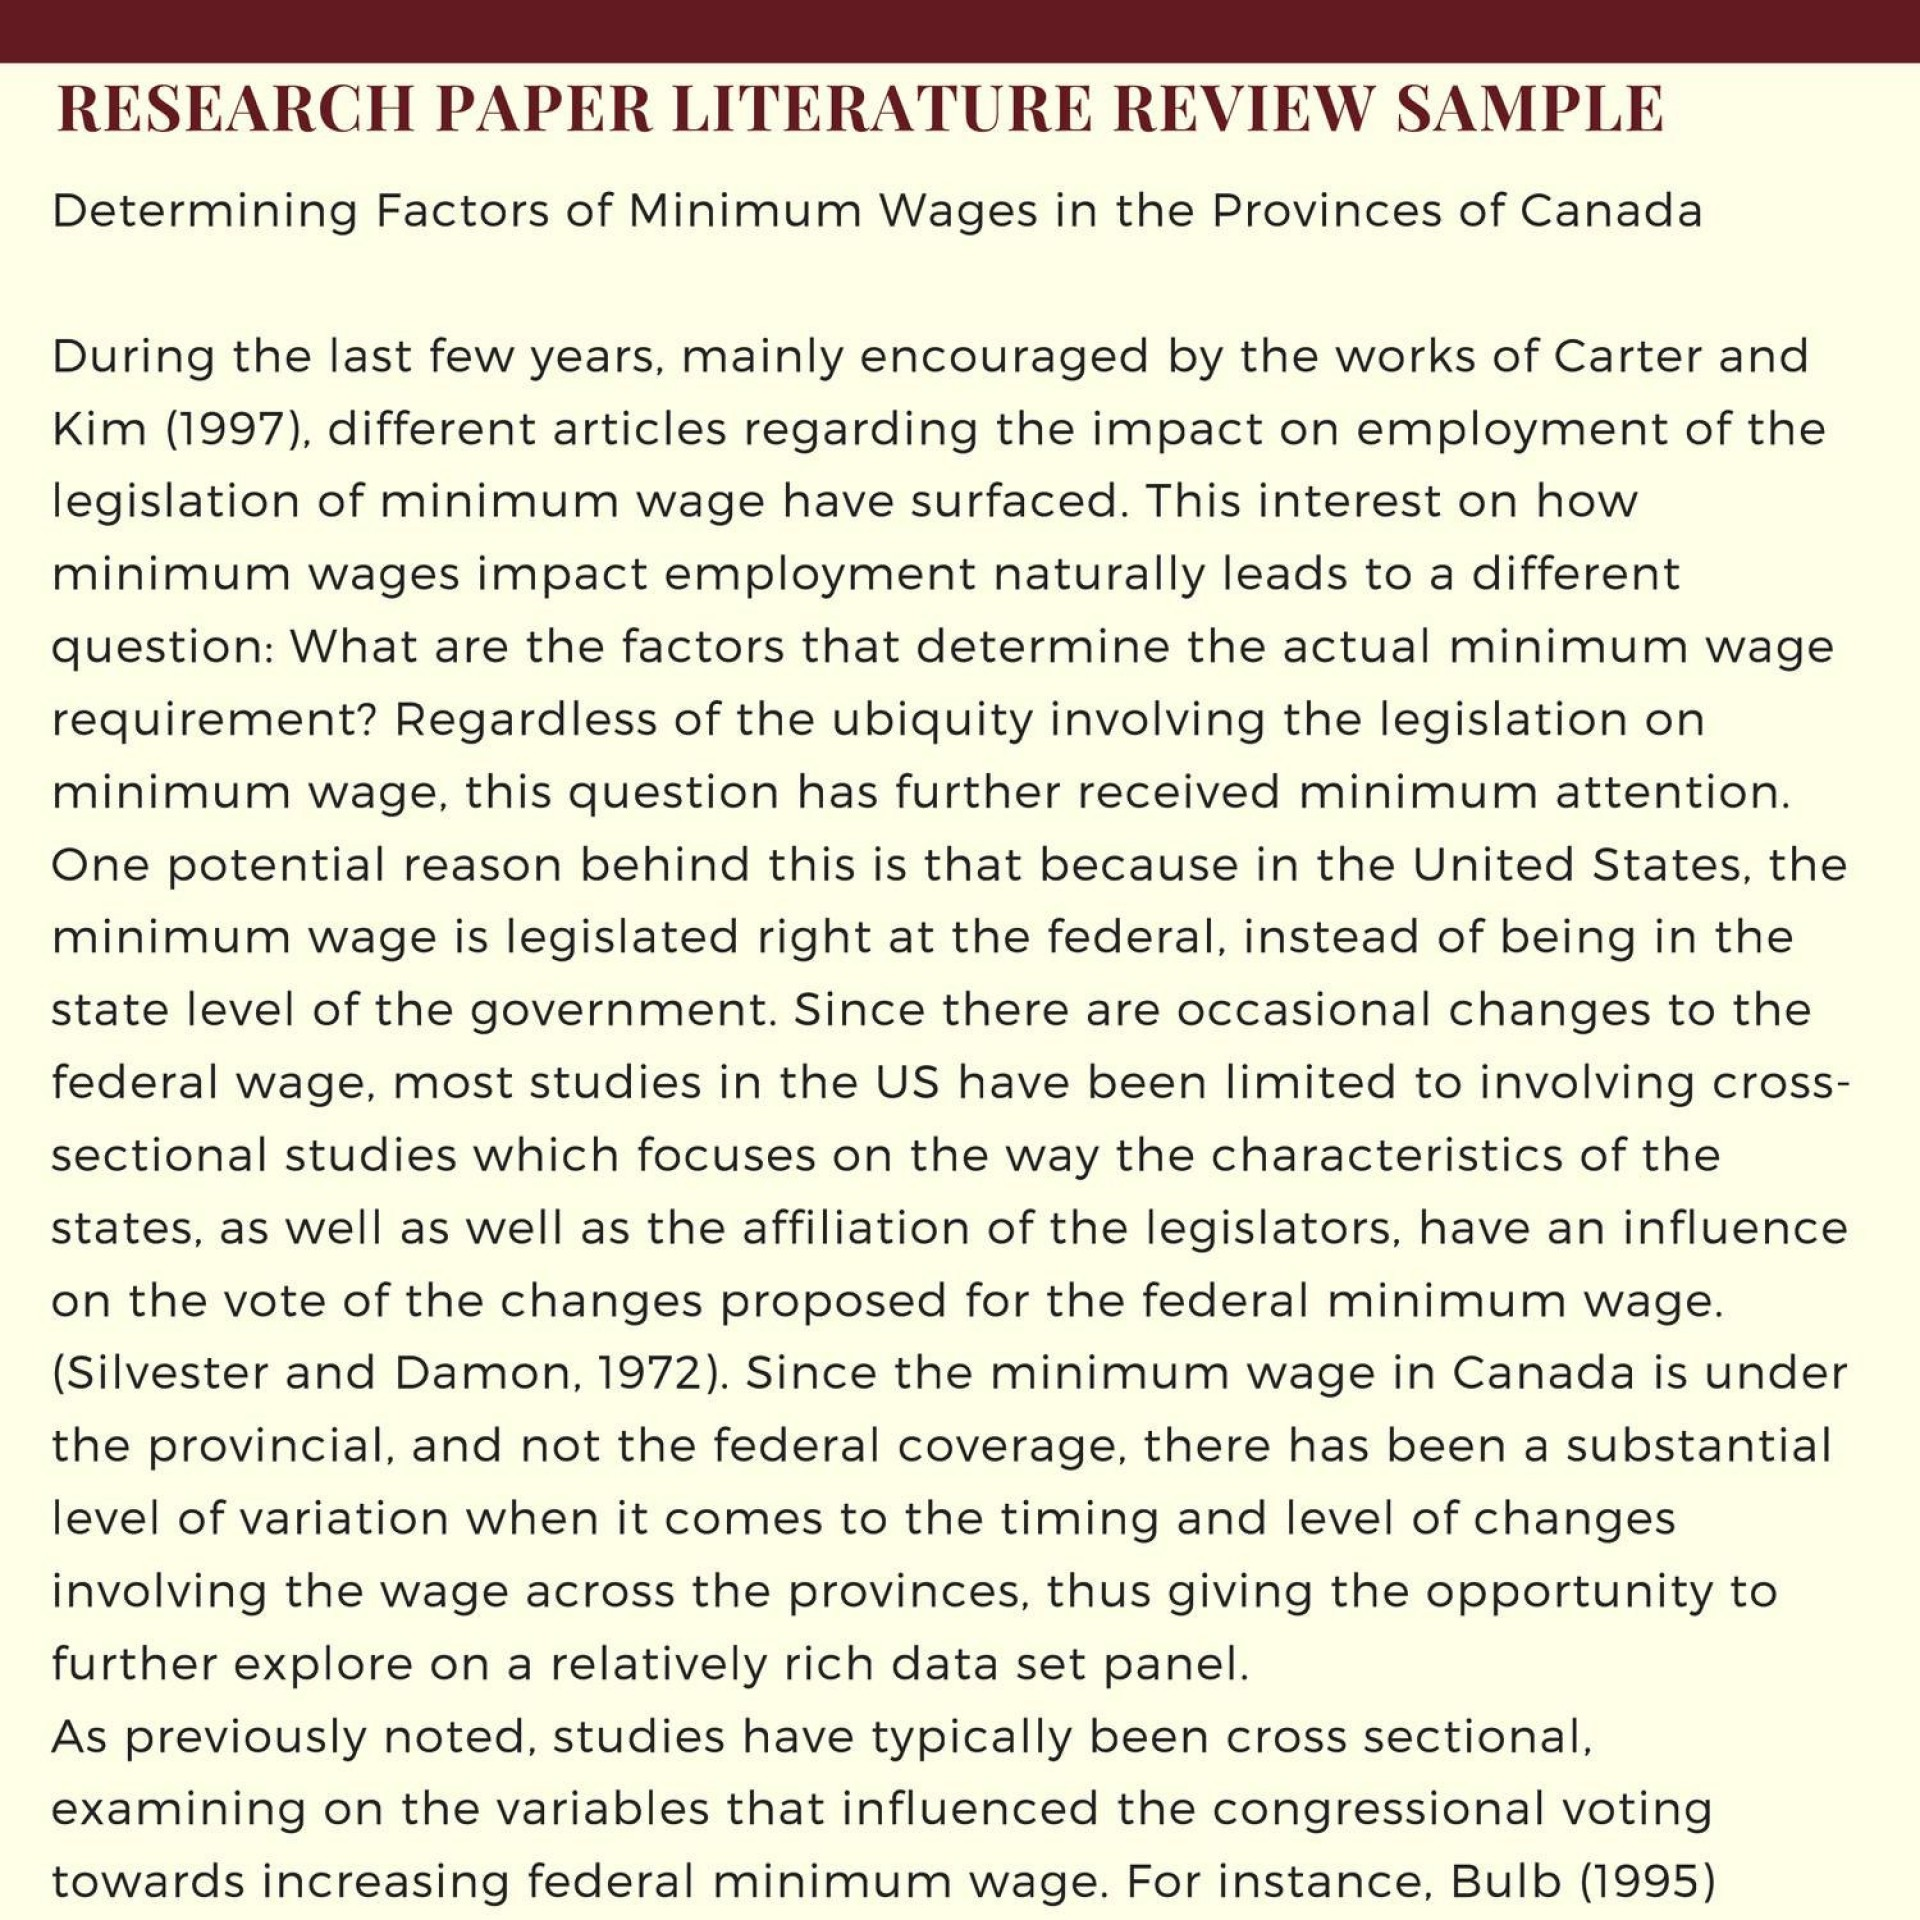 003 Research Paper Literature Review Sample Exceptional For Engineering Apa Pdf 1920